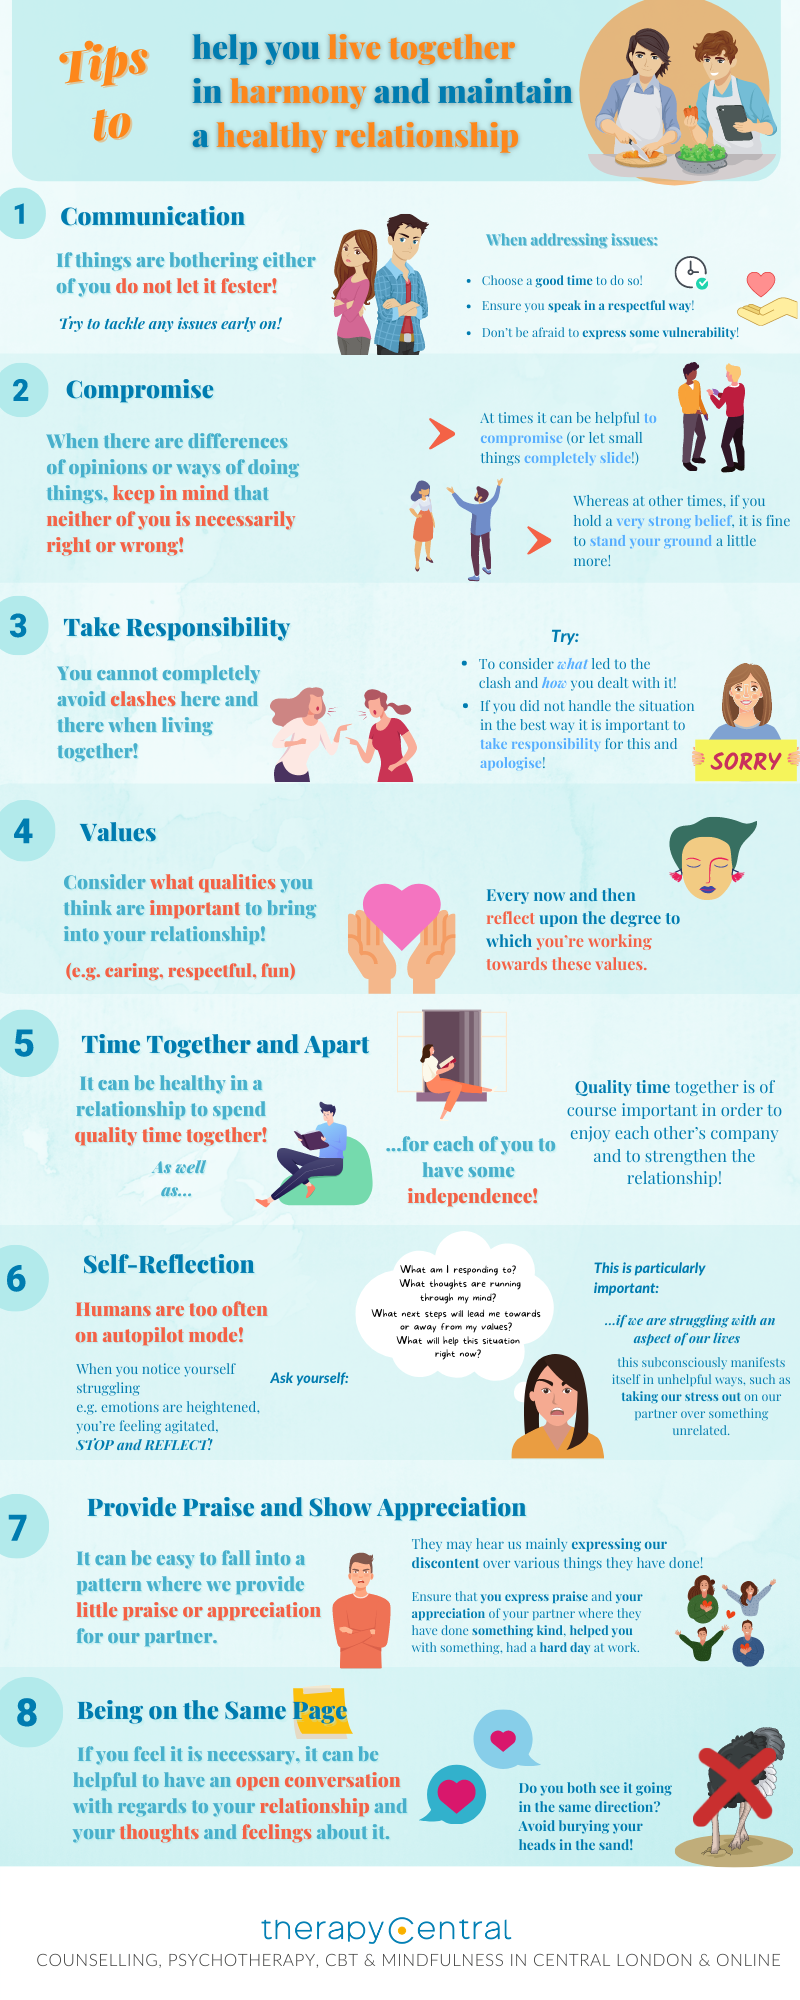 Tips to Live together in Harmony Infographic